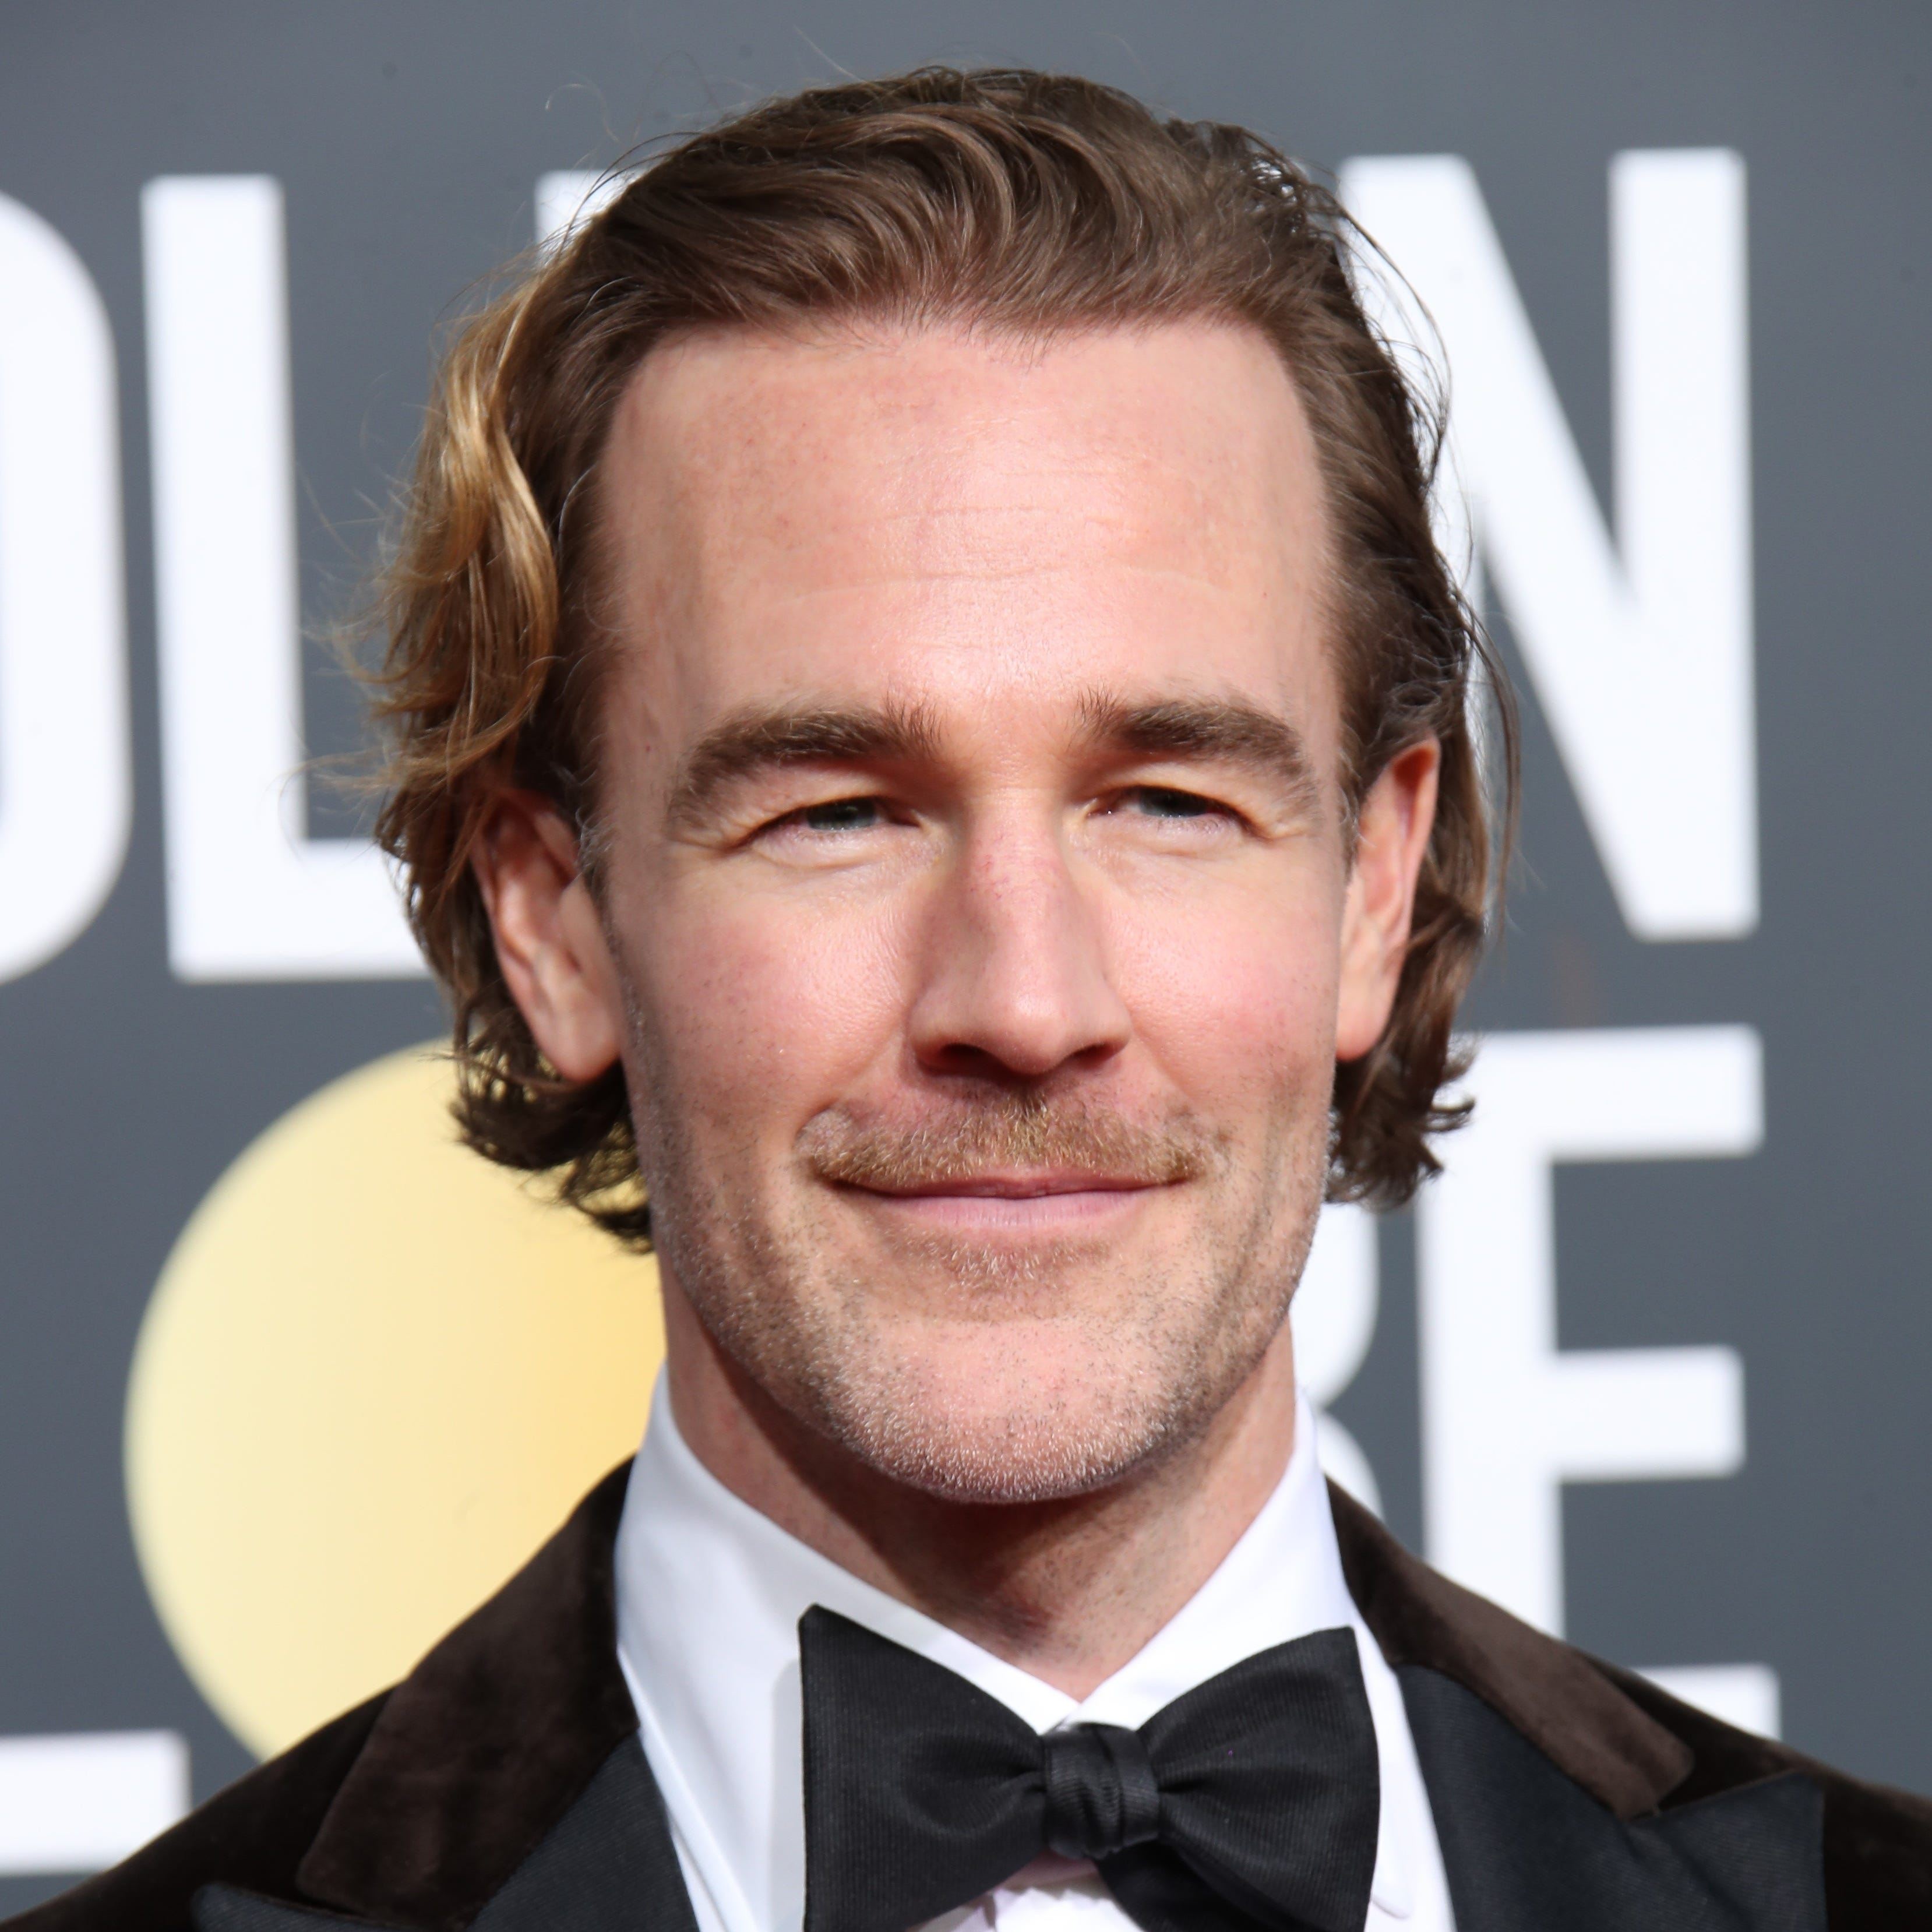 Actor James Van Der Beek